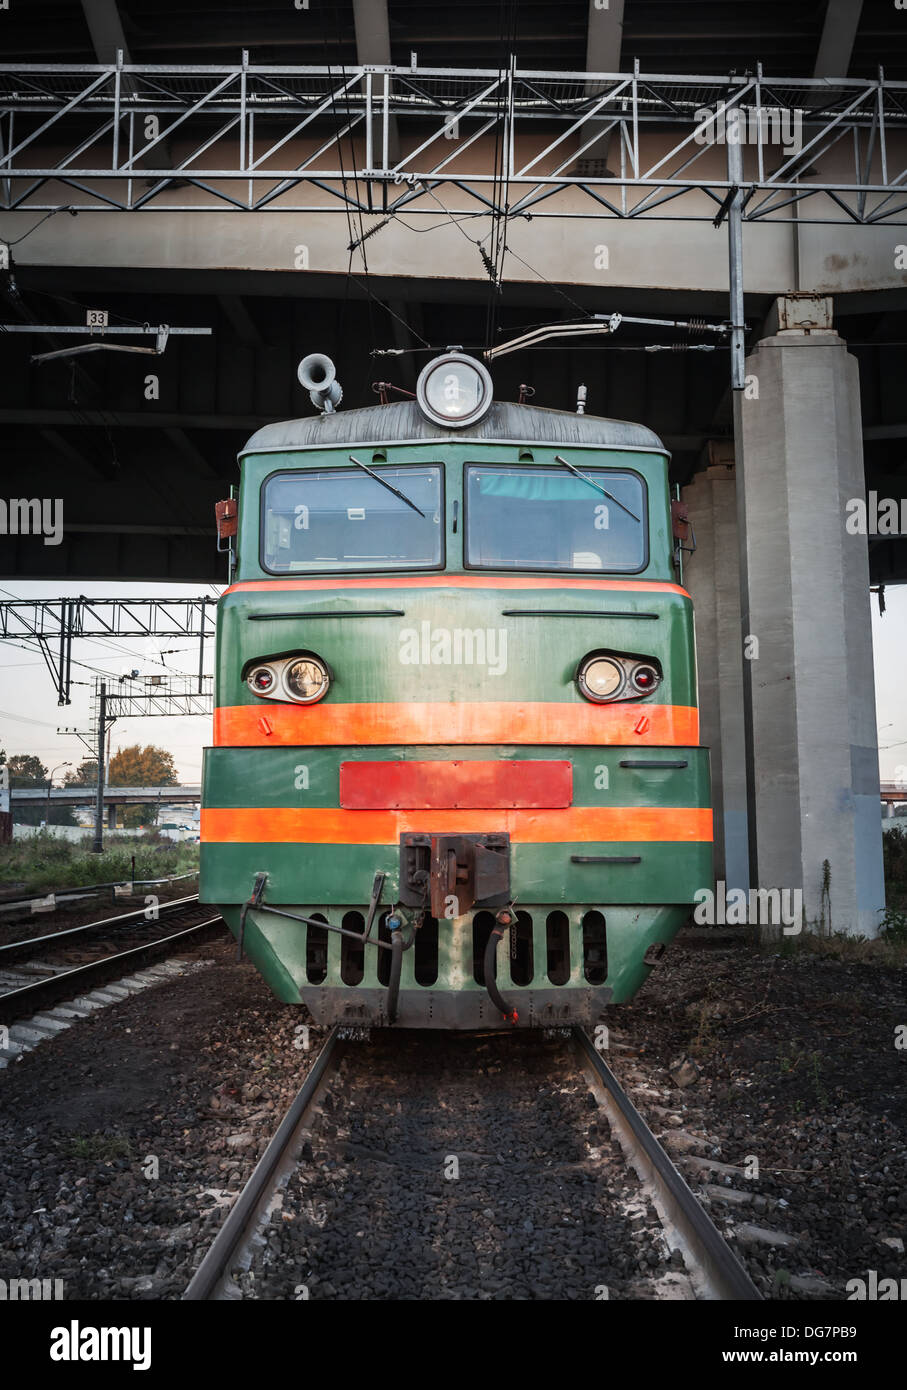 Green locomotive with red stripes on the cabin stands under the bridge on the railway Stock Photo